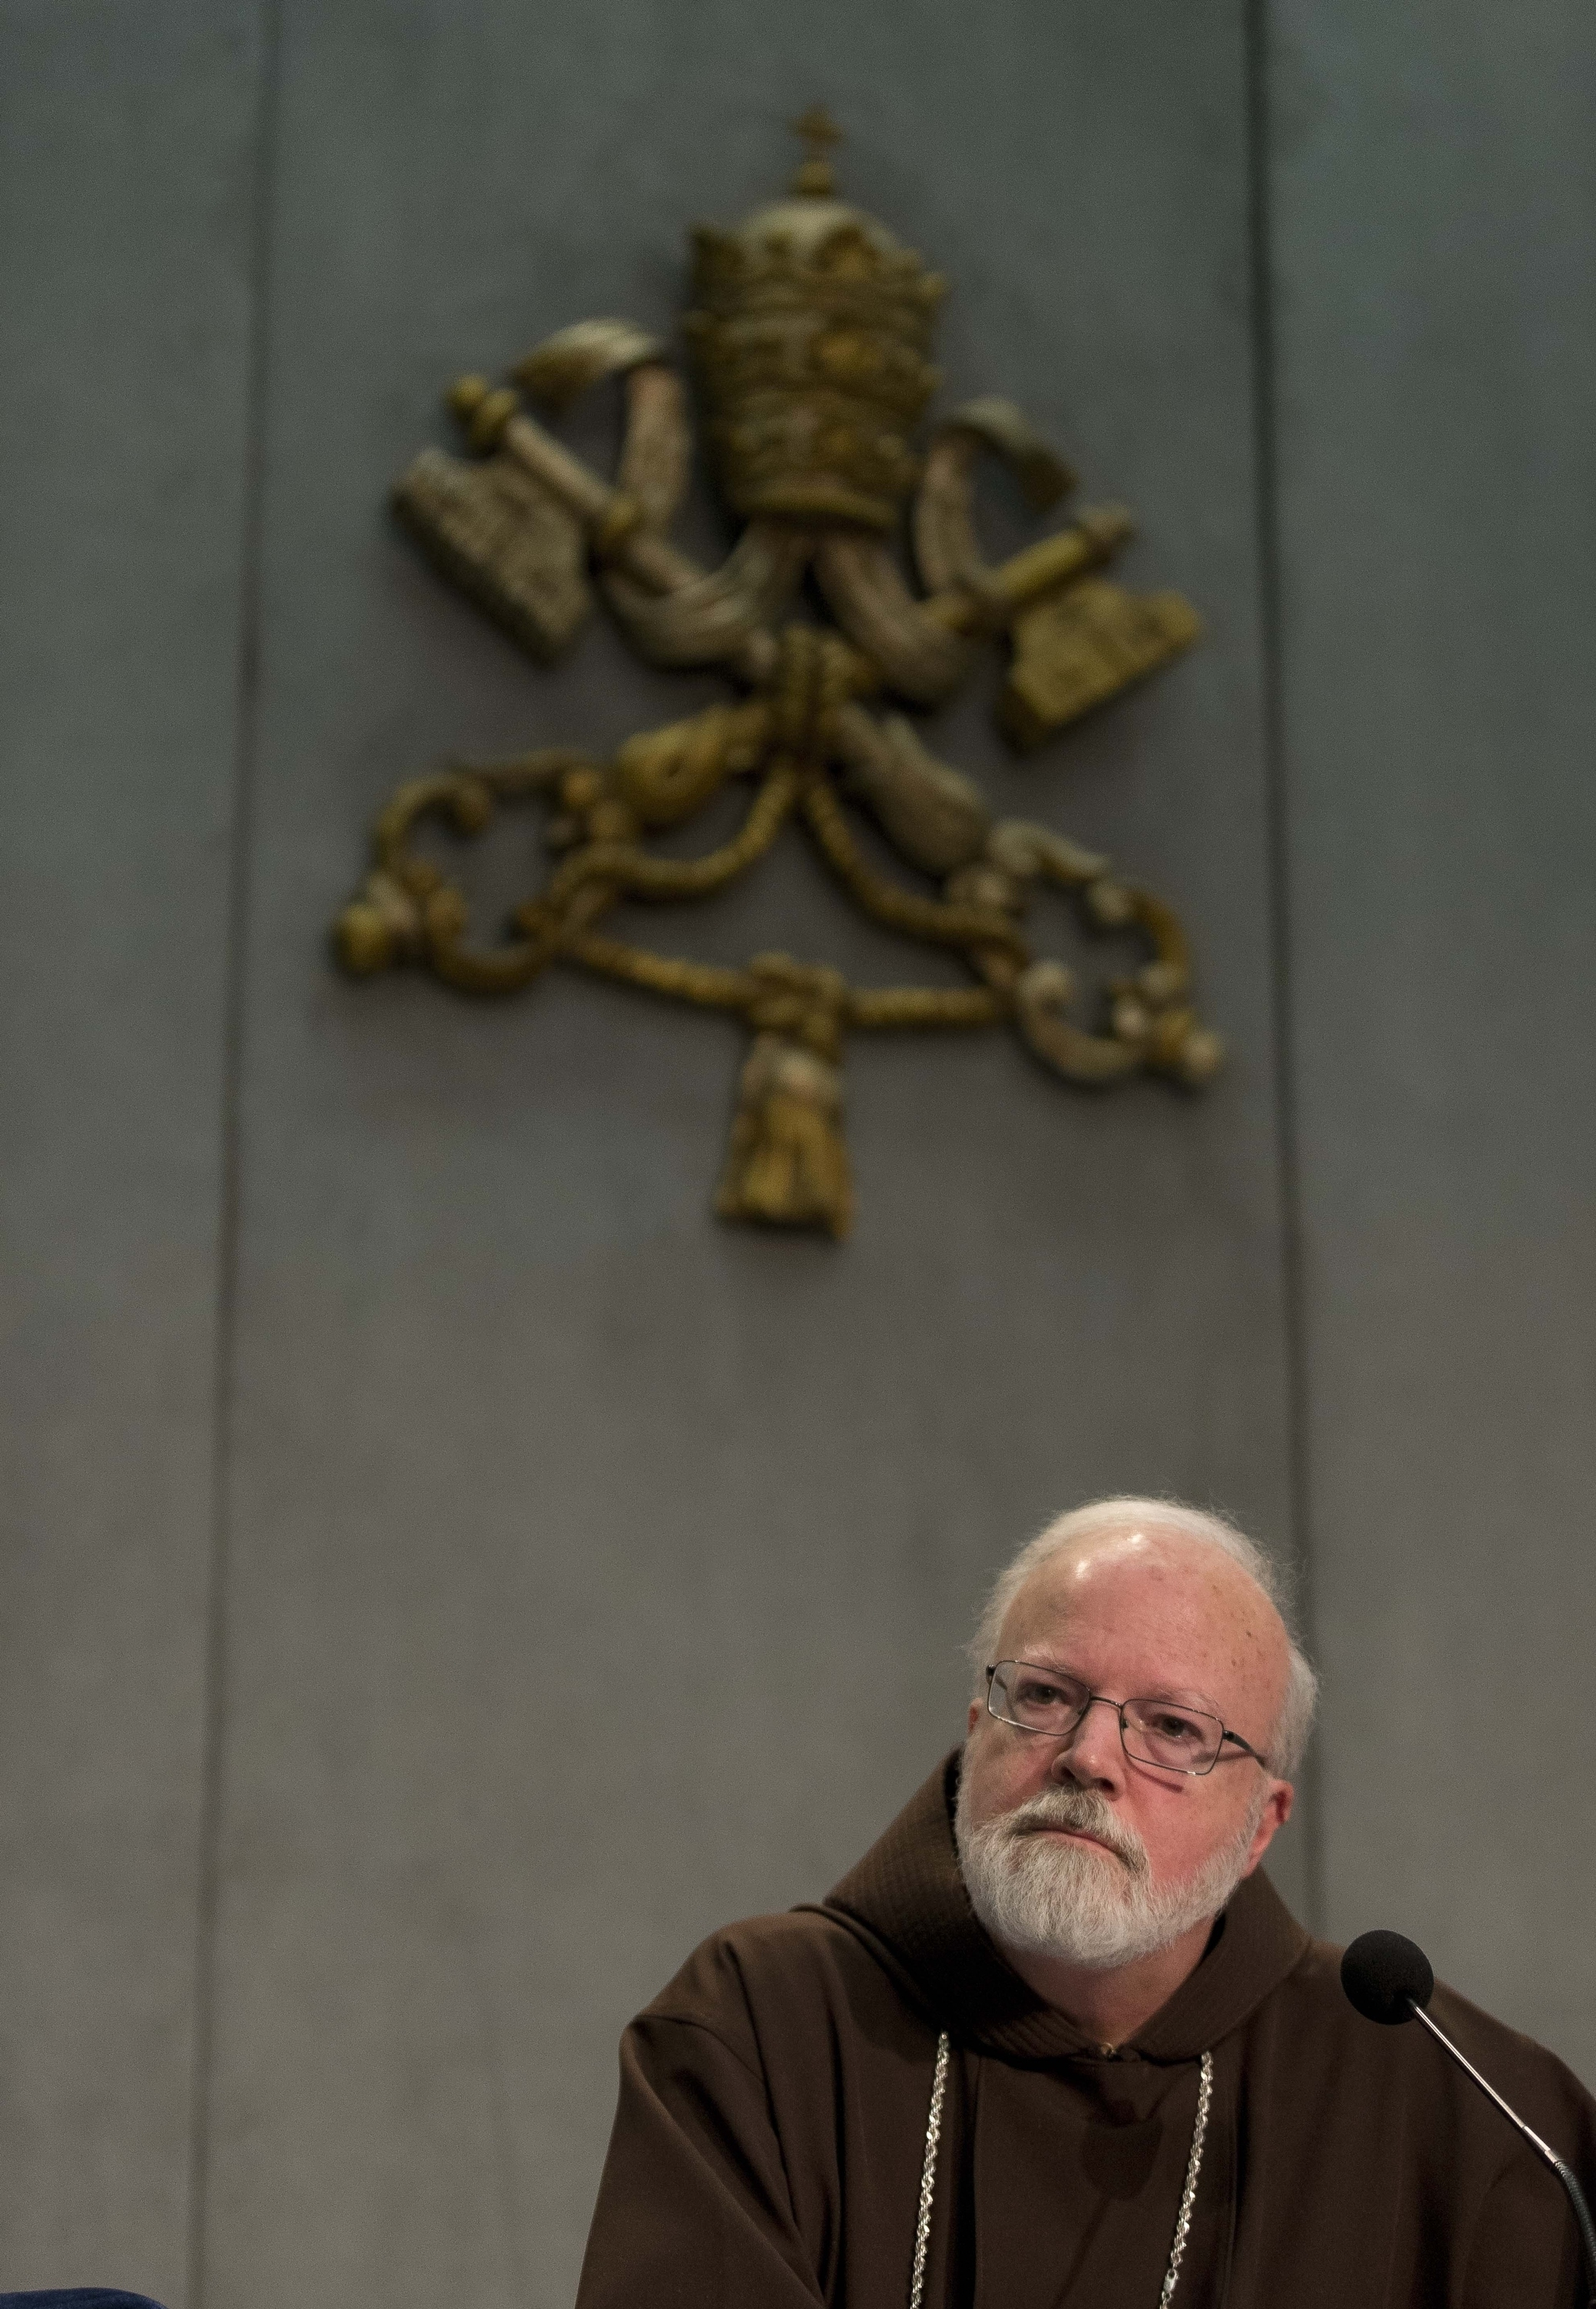 Cardinal Sean O'Malley, archbishop of Boston, is on a commission to advise Pope Francis on sex abuse policy.